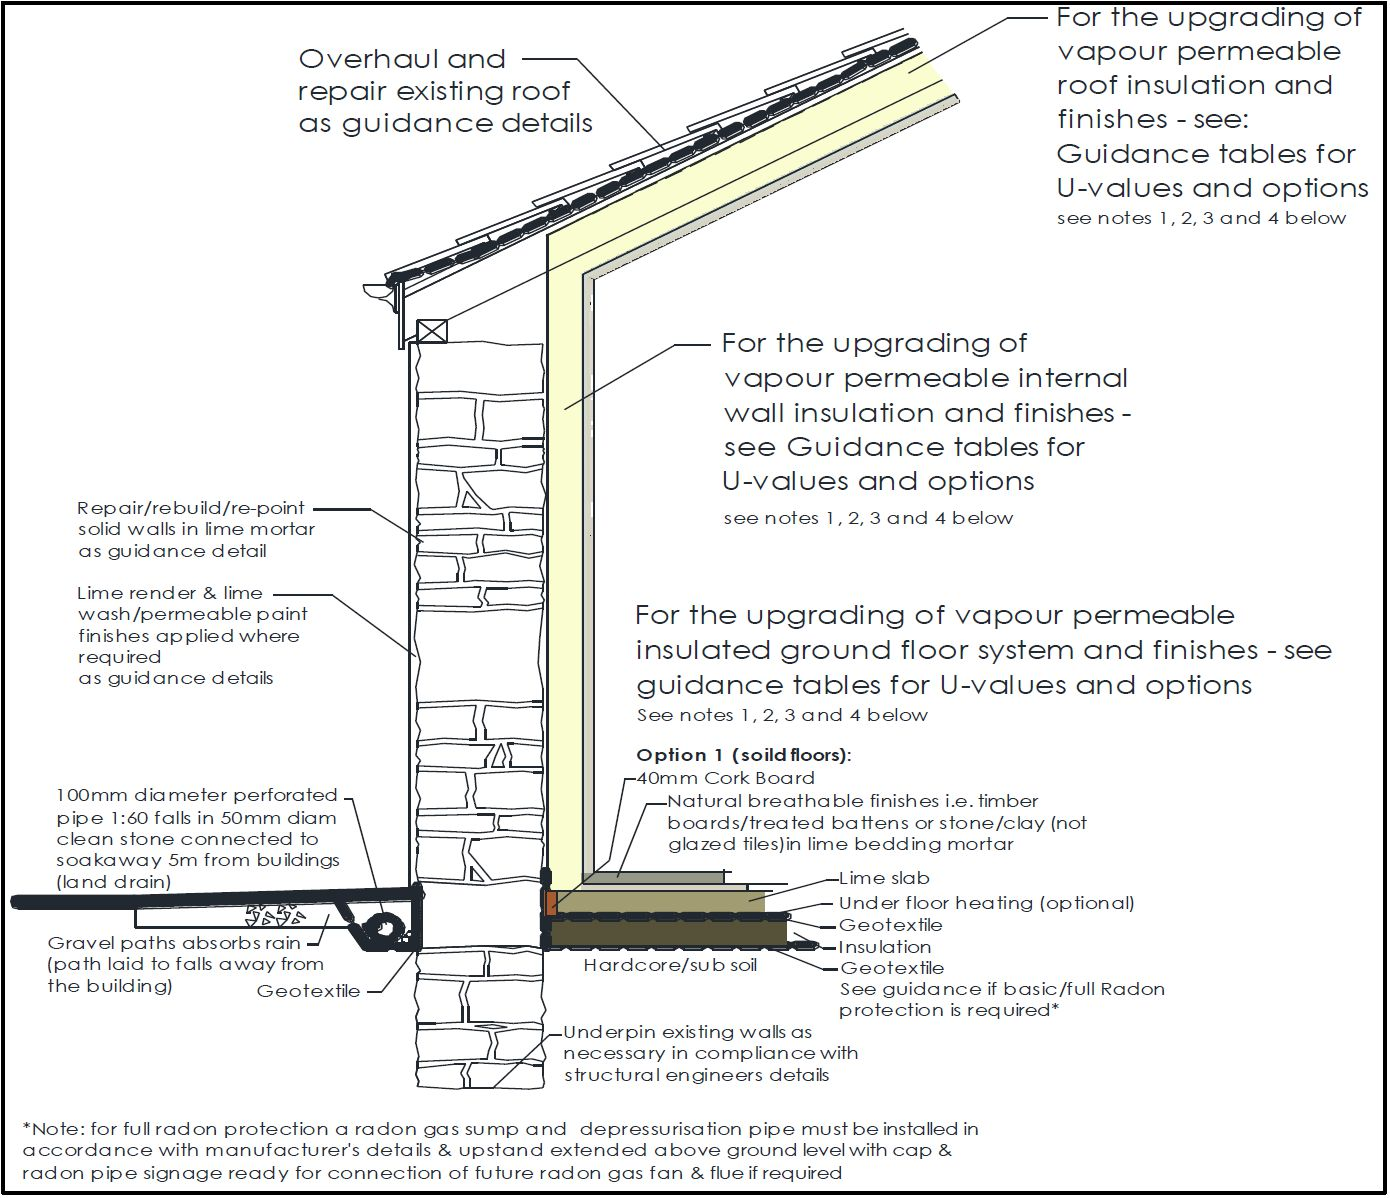 Section through traditional building showing how retrofit could be achieved